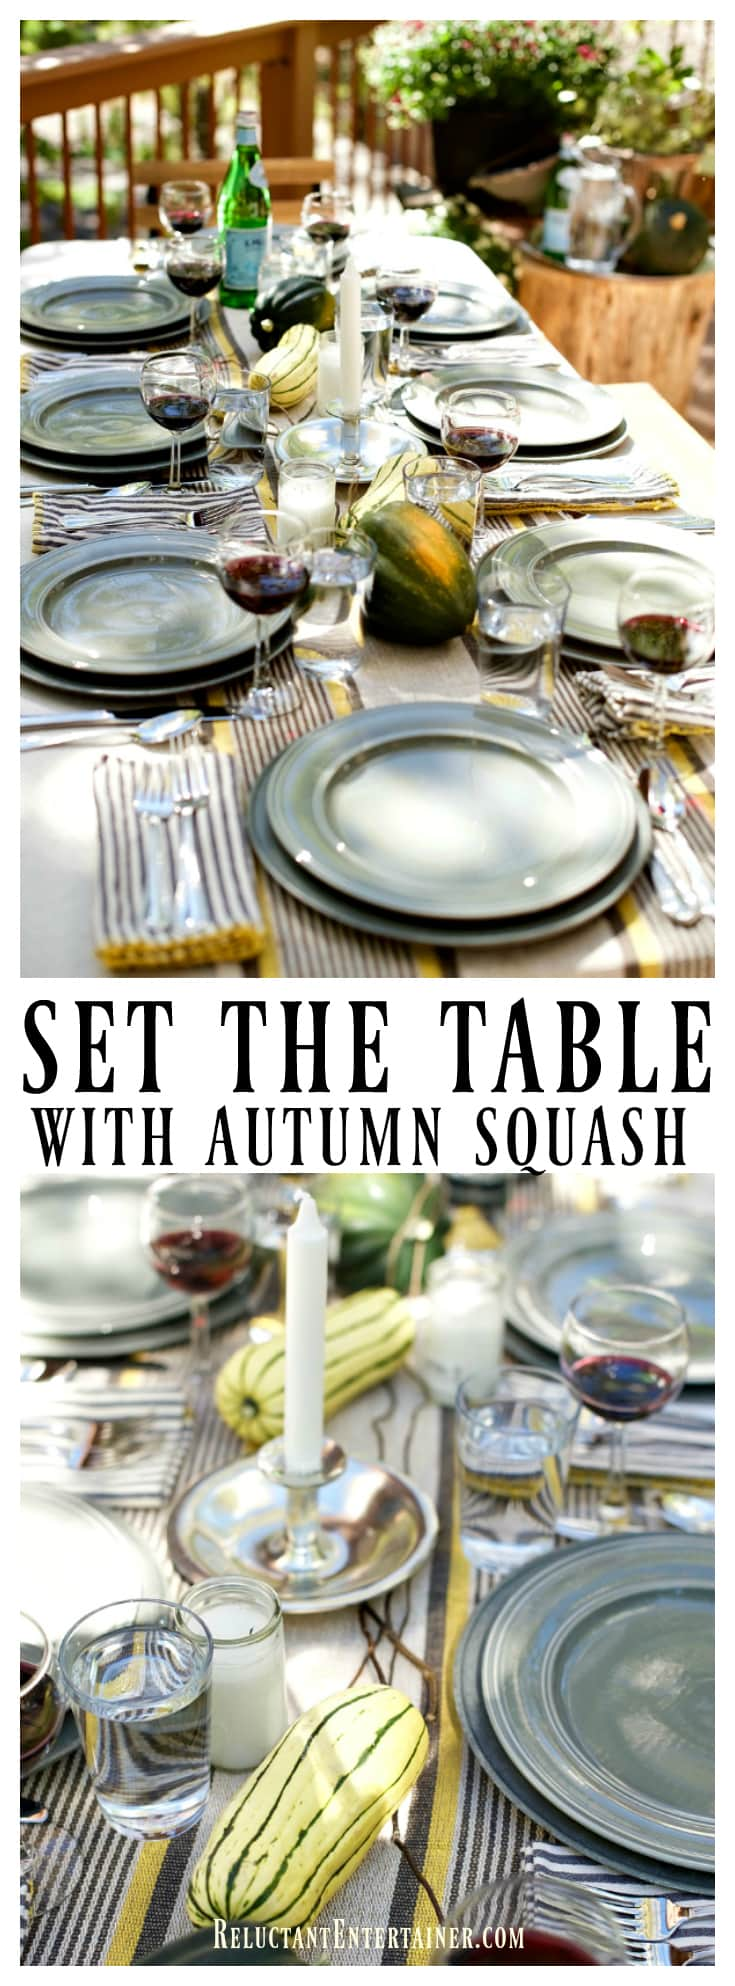 Set the table with Autumn Squash and Walnut-Crusted Goat Cheese with Thyme Honey